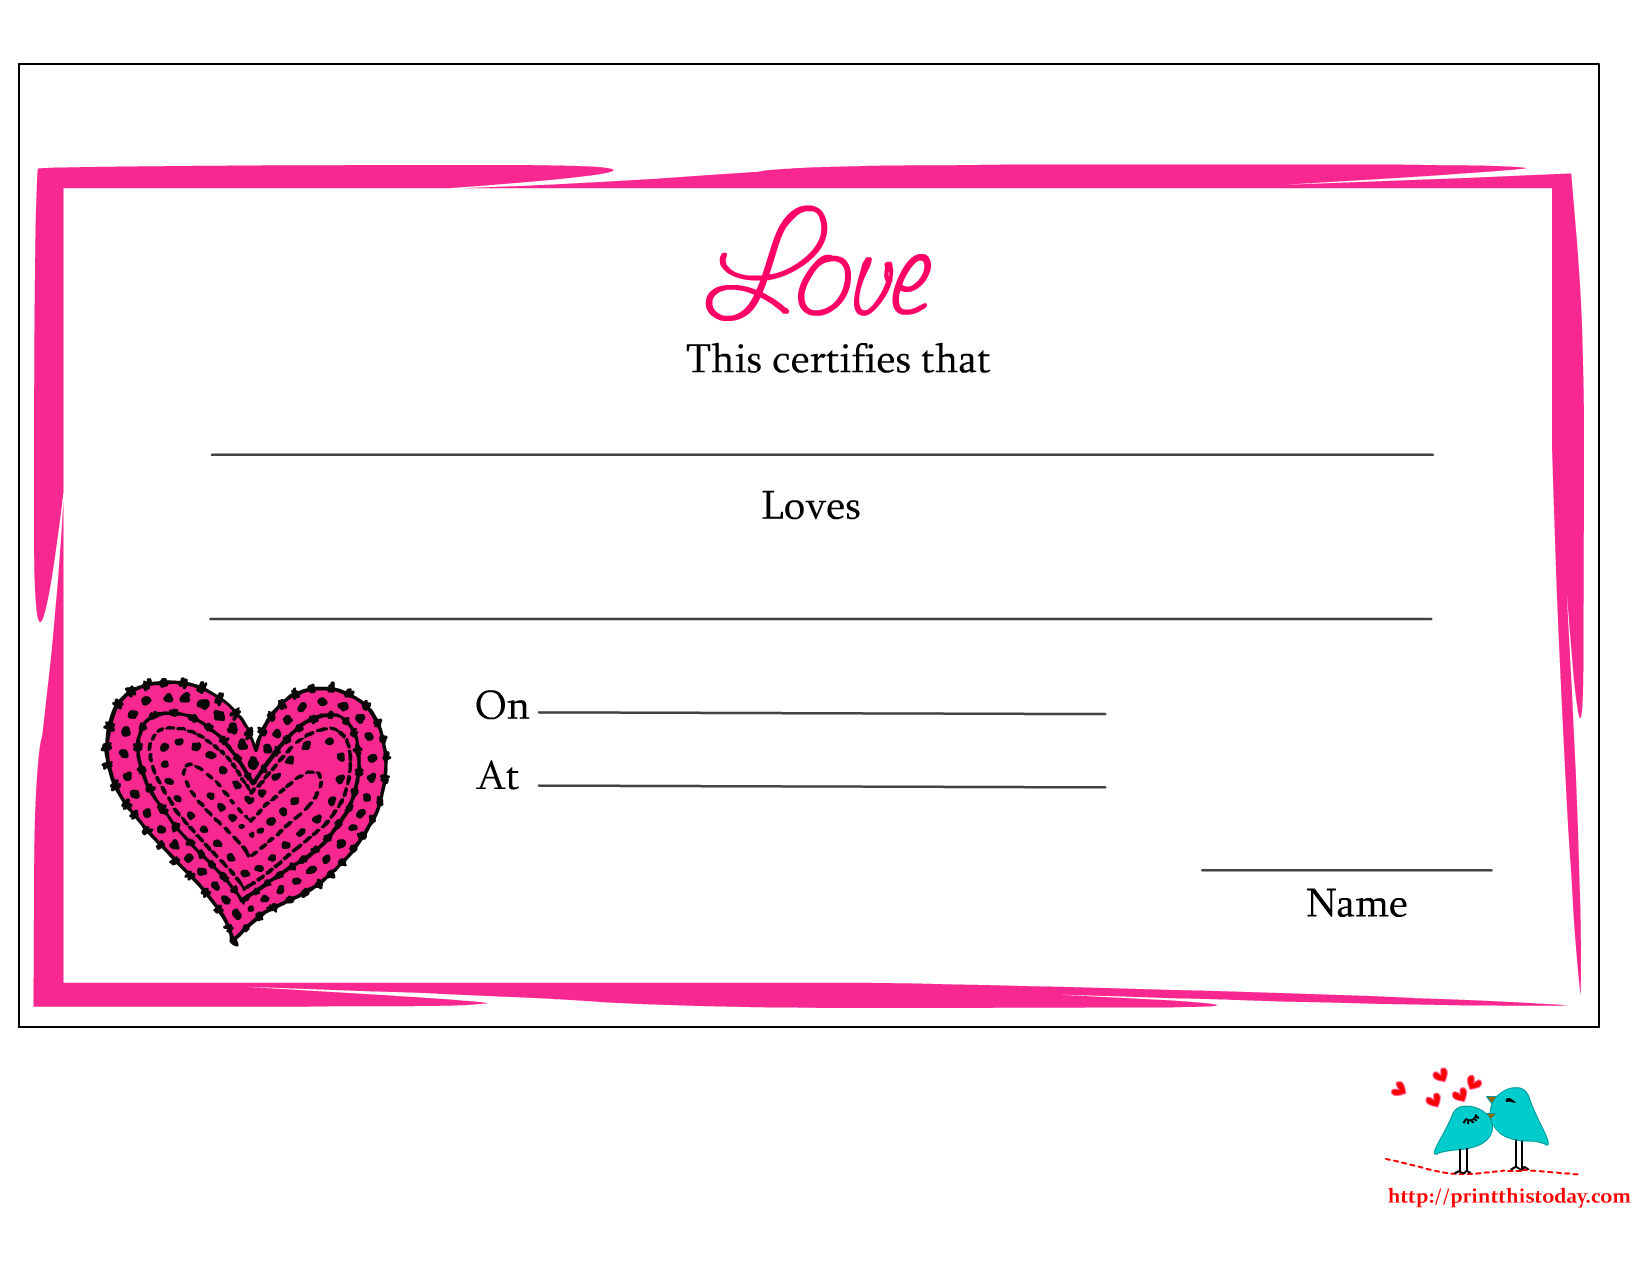 photo relating to Free Printable Love Cards named Absolutely free printable delight in certification For the vacations Totally free